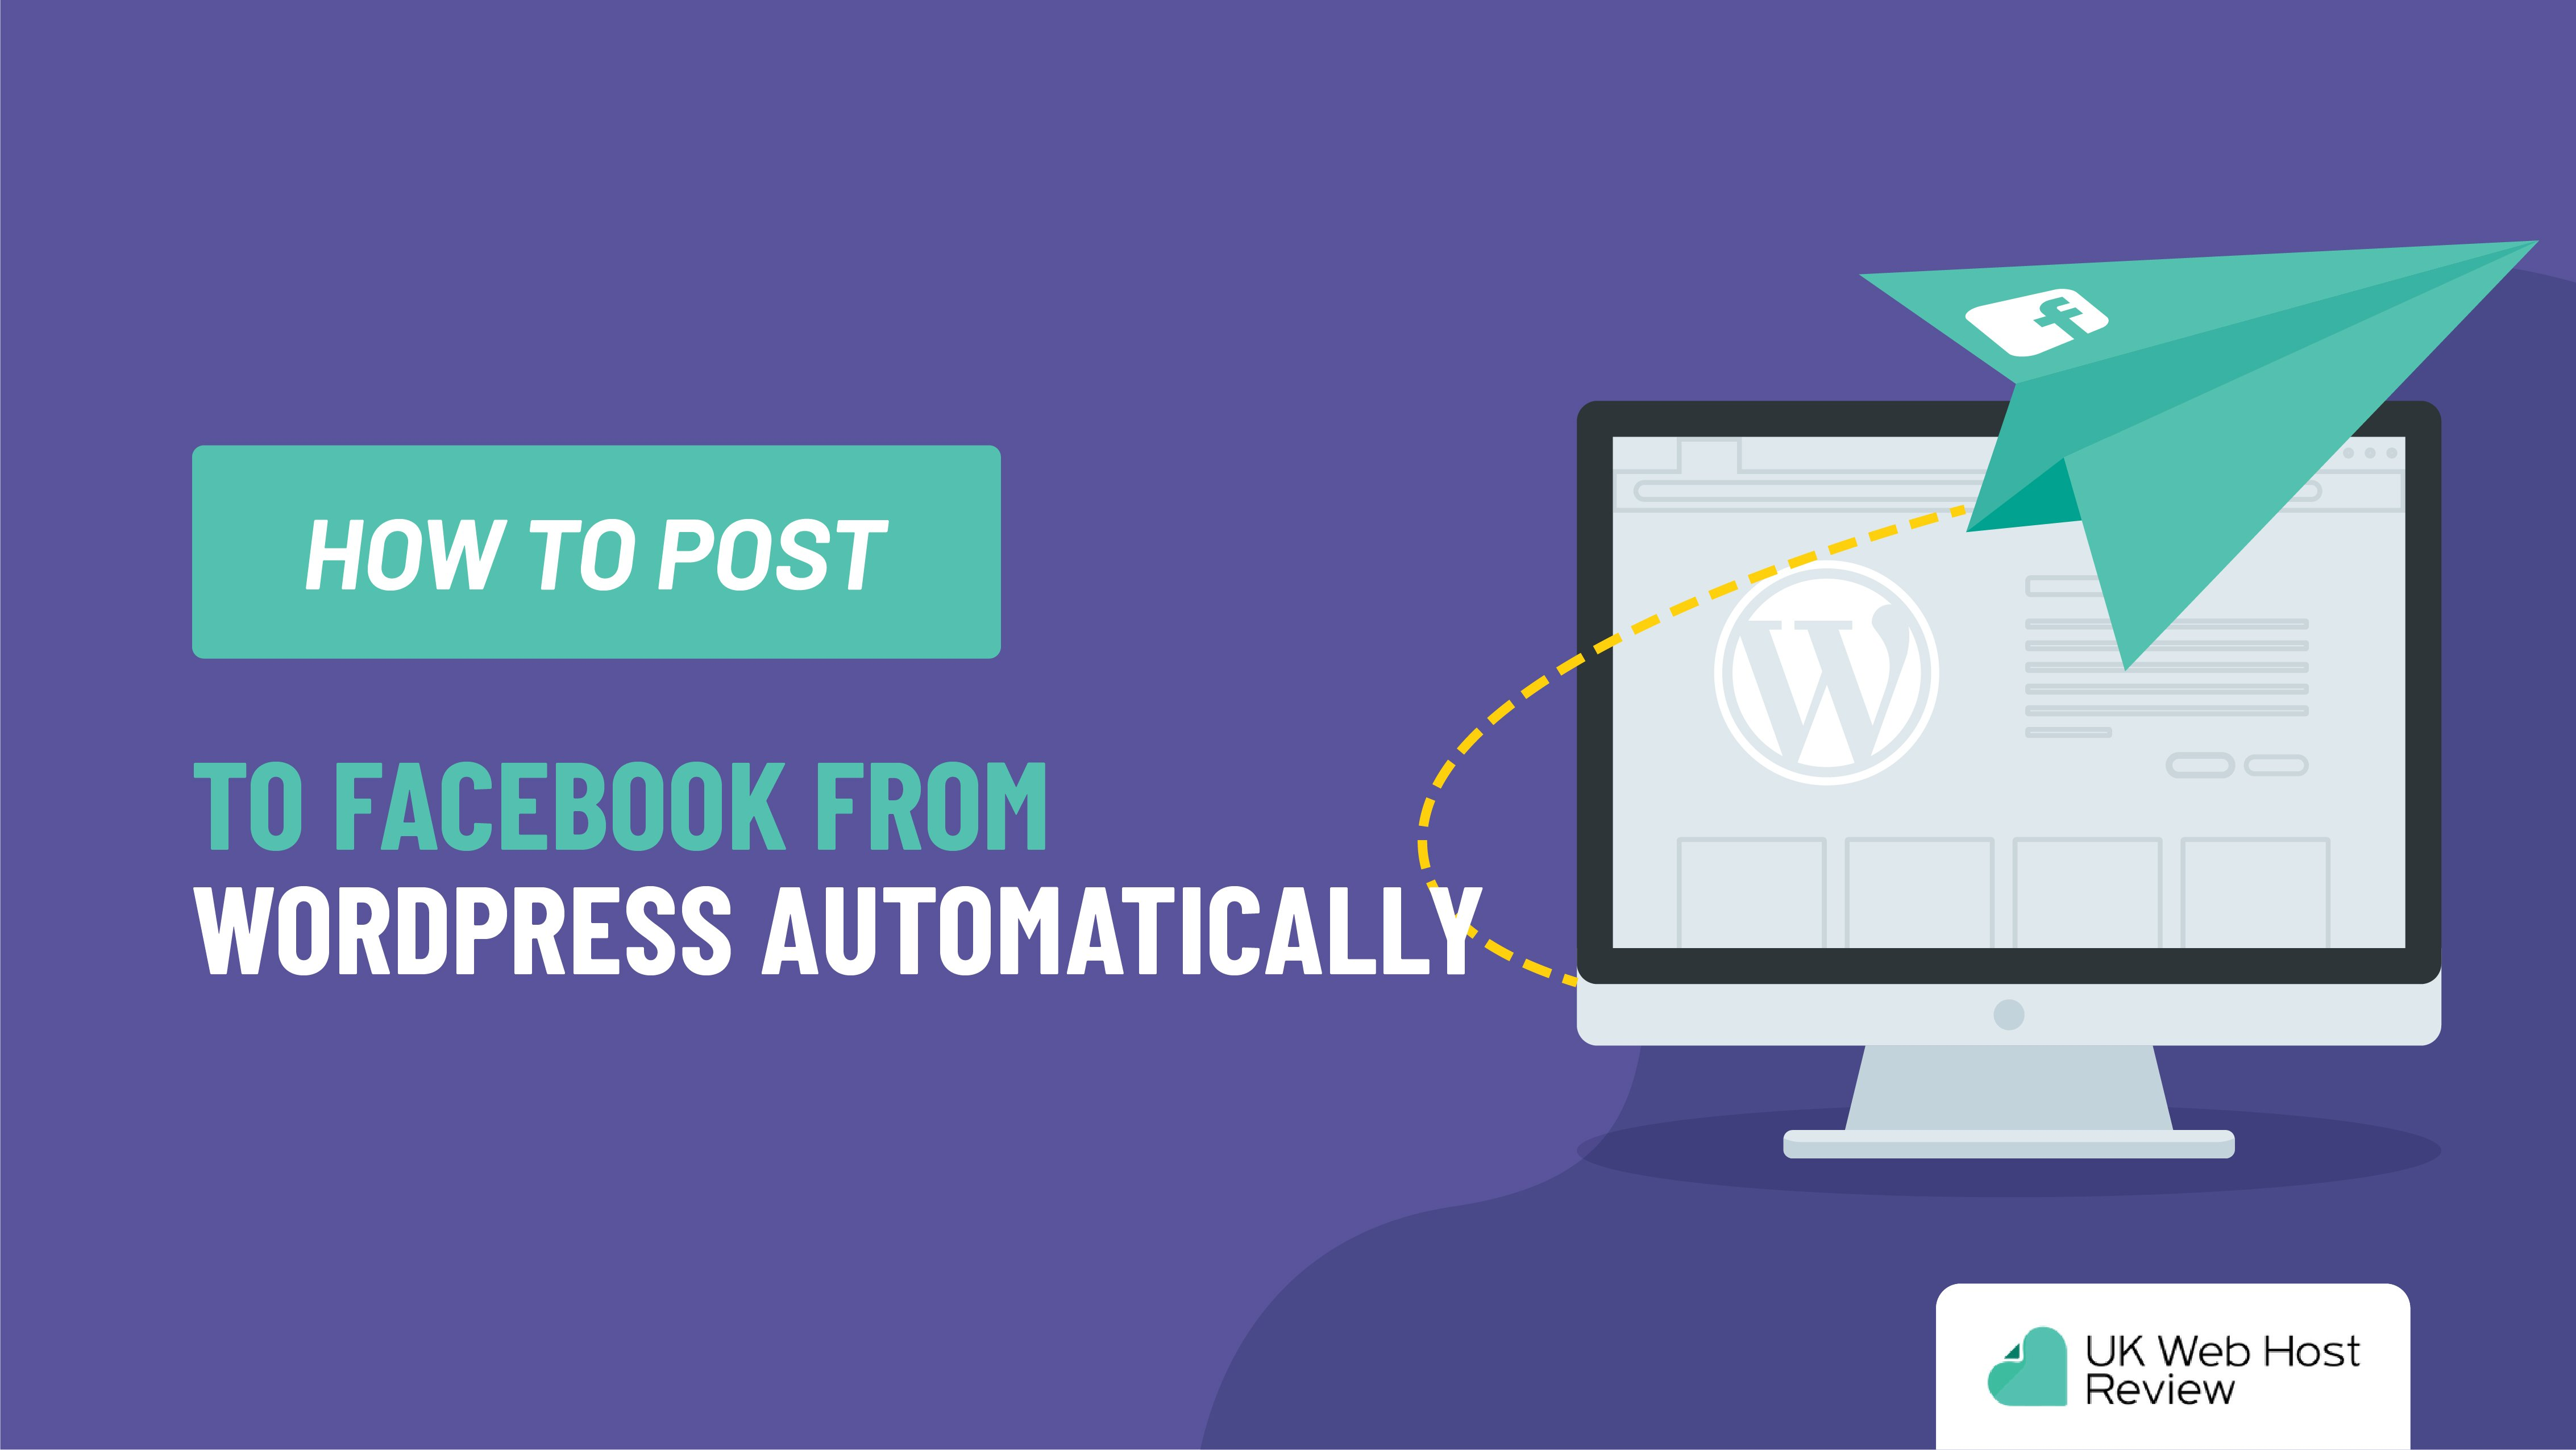 How to Post to Facebook from WordPress Automatically